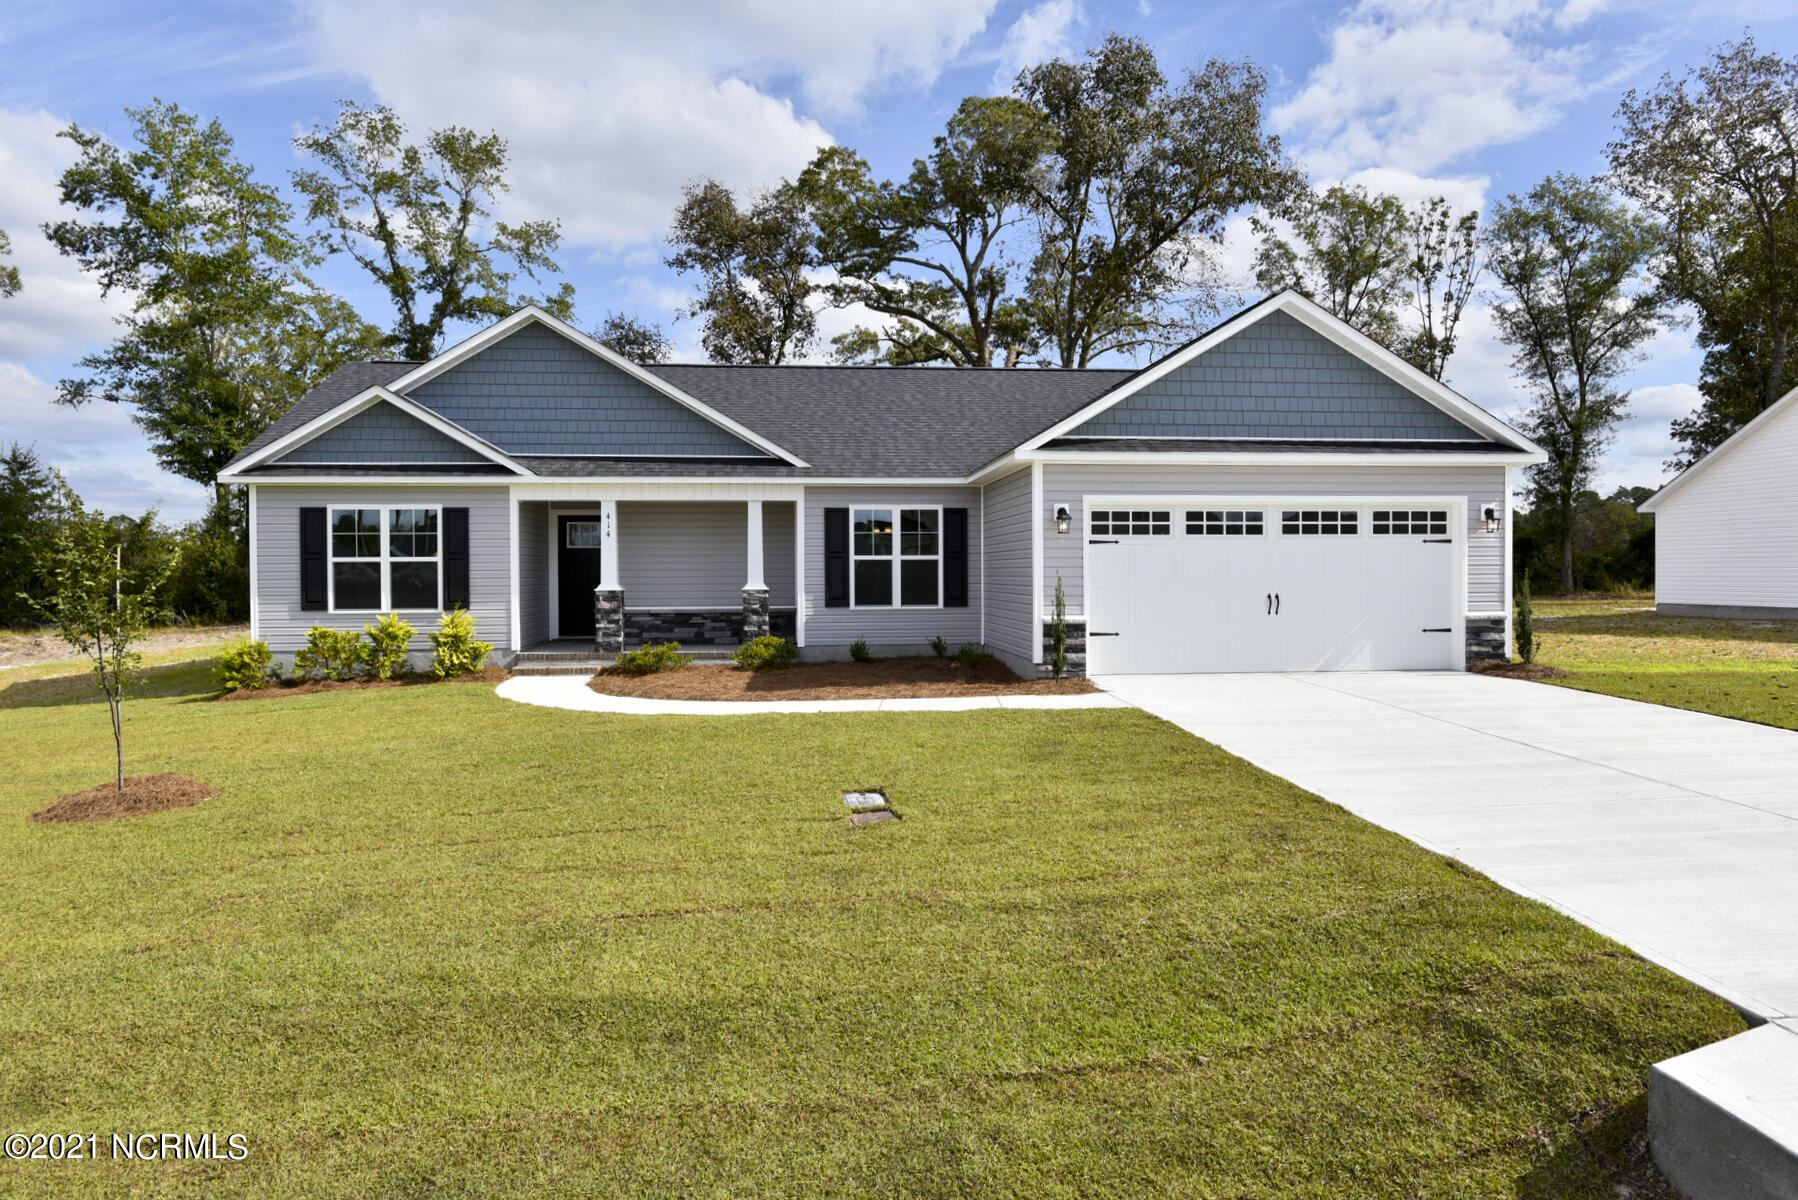 Photo of 413 Duster Lane, Richlands, NC 28574 (MLS # 100295297)